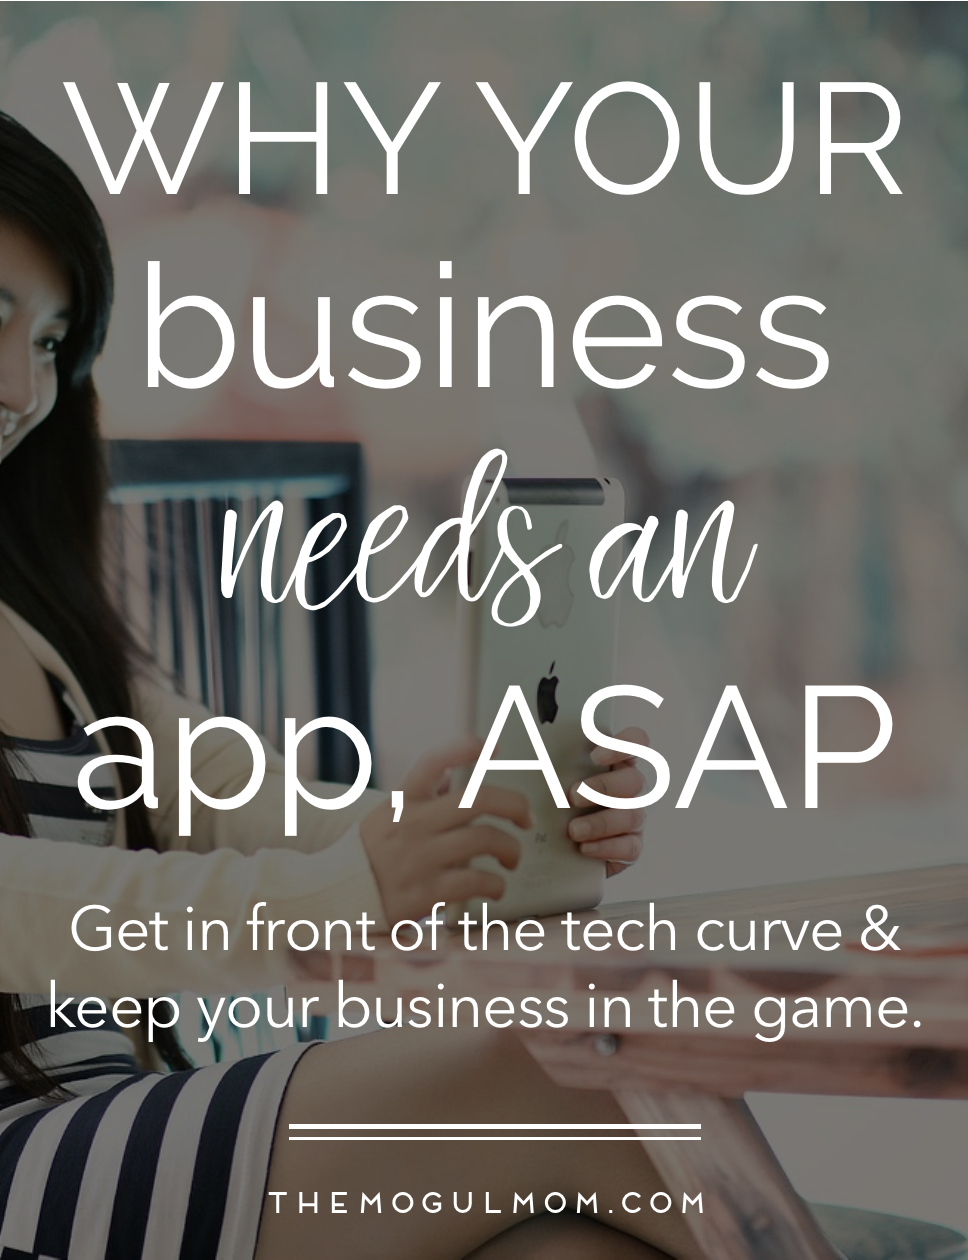 Why Your Business Needs An App, ASAP